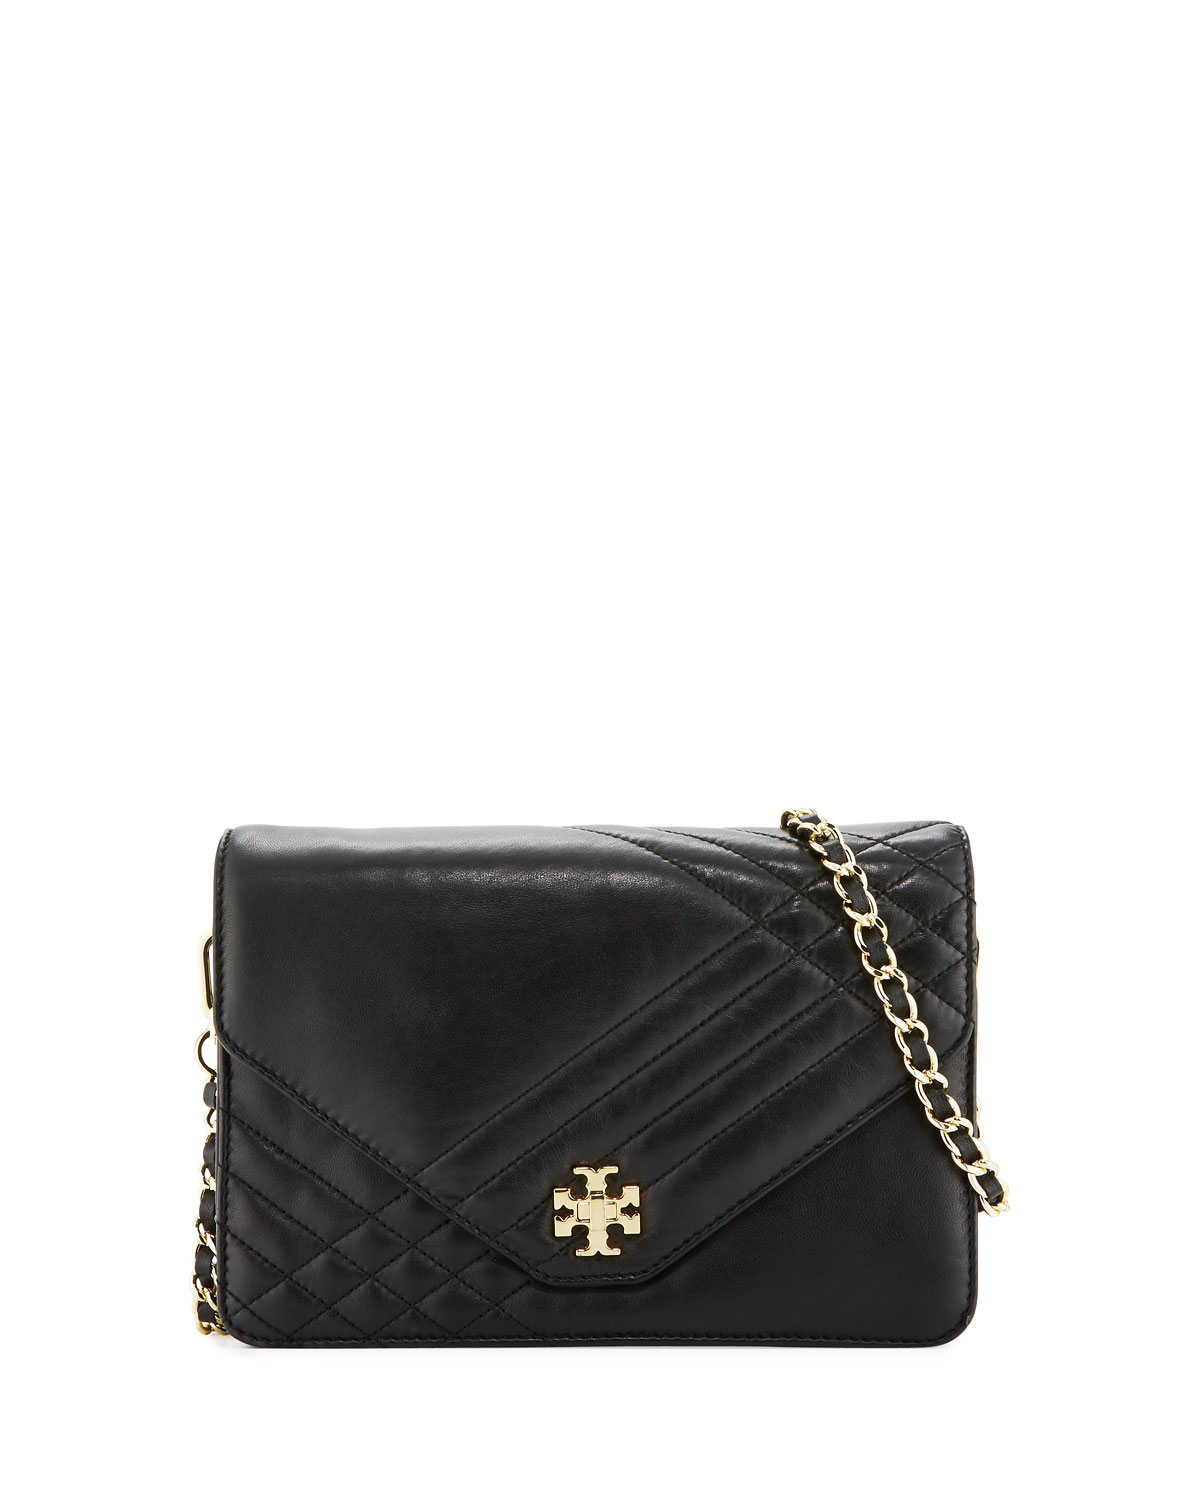 de5720dab9fc Tory Burch Kira Quilted Leather Crossbody Bag